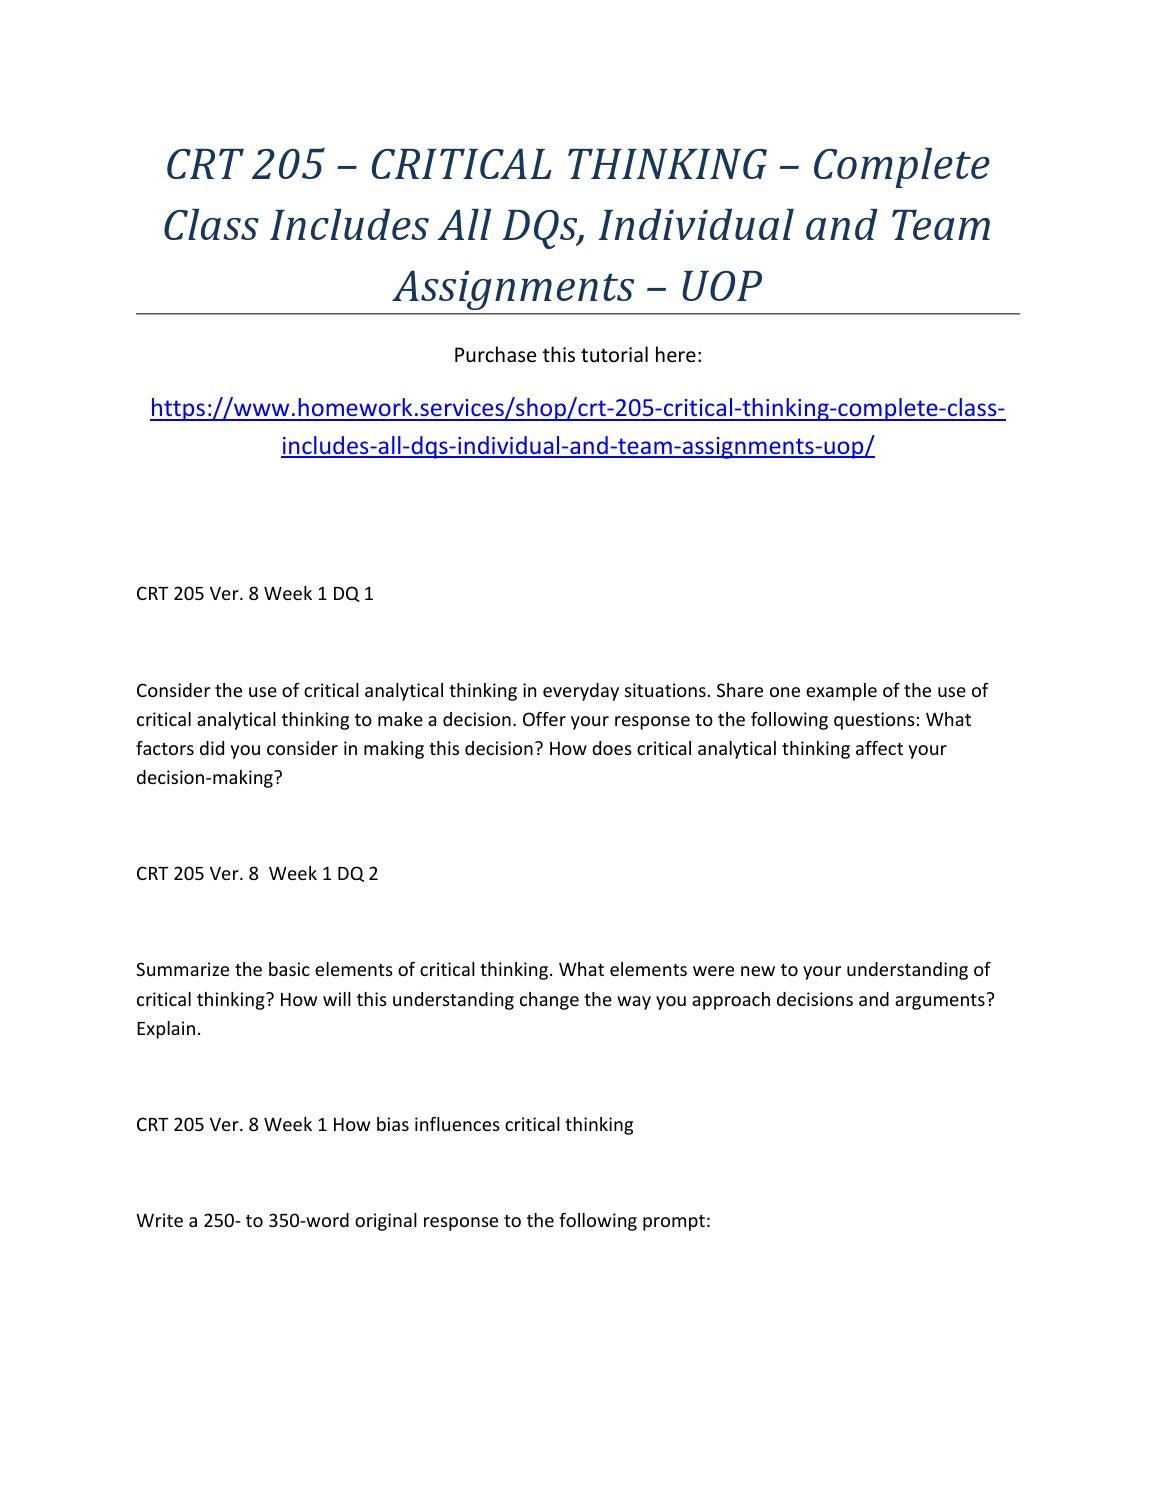 crt205 mapping an argument Check out our top free essays on rhetorical analysis on a  uop crt 205 week 9 final project comprehensive argument analysis  crt 205 full class version 8 .